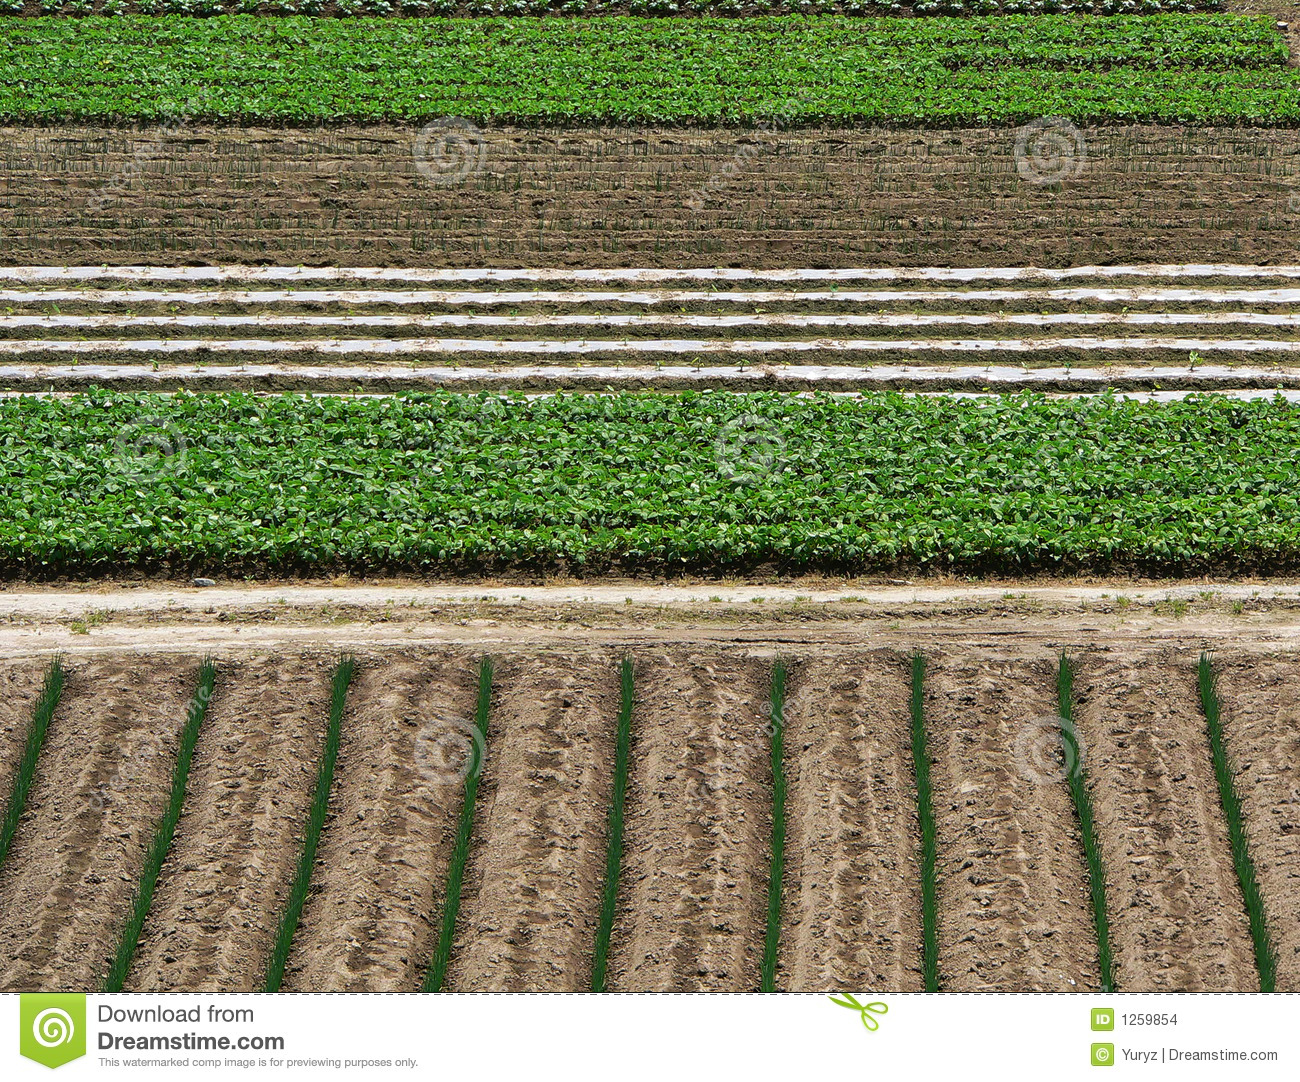 Agriculture background